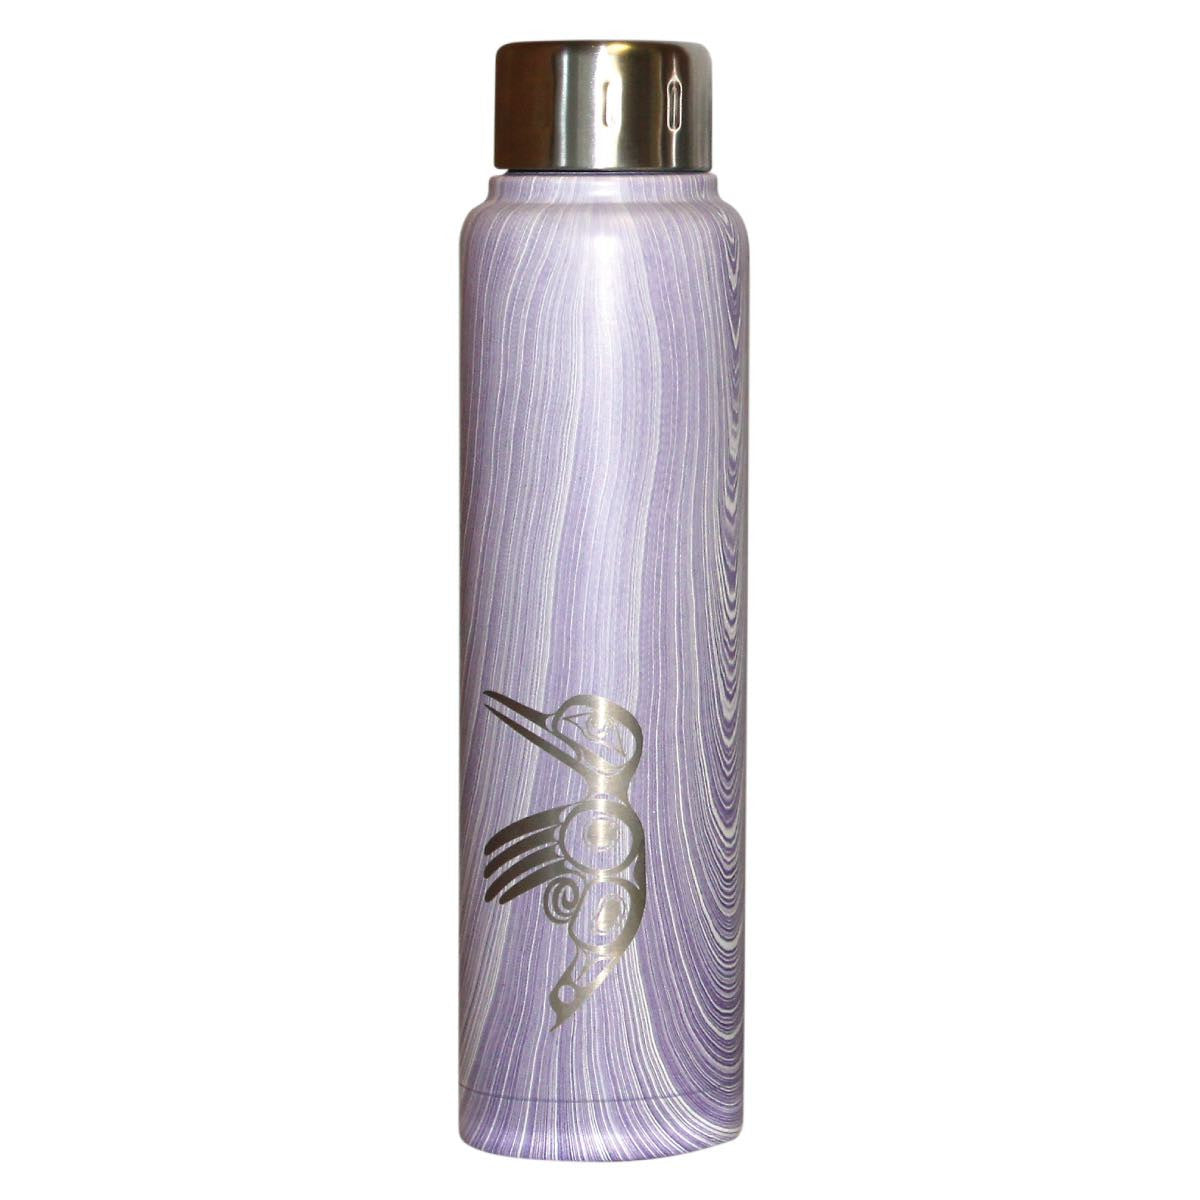 Insulated Stainless Steel Totem Bottle - Hummingbird by Ryan Cranmer